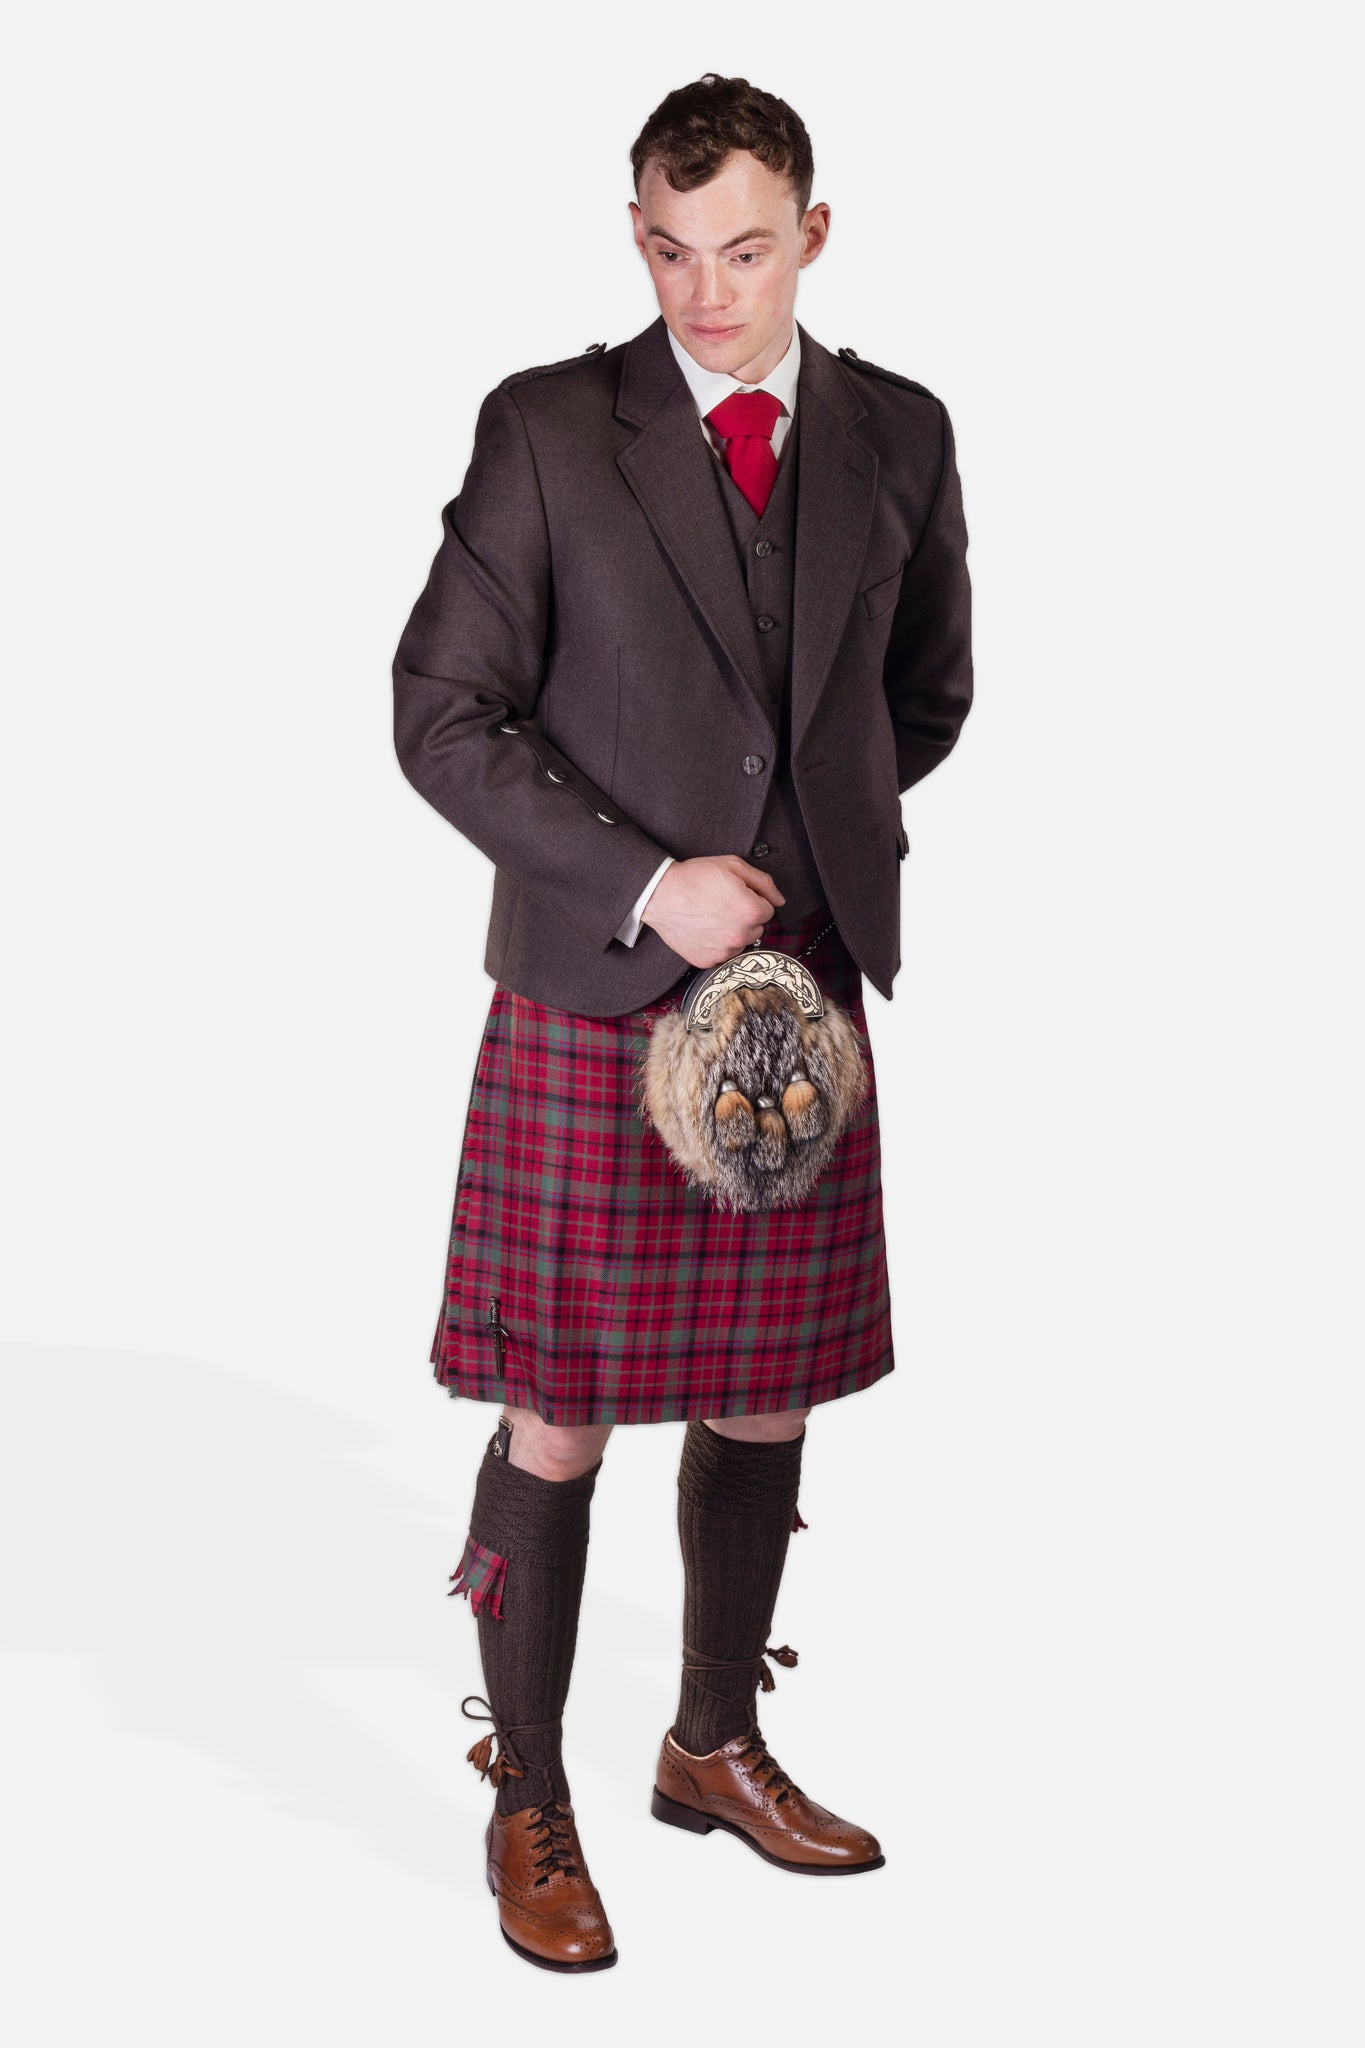 Red Nicolson Muted / Peat Holyrood Hire Outfit